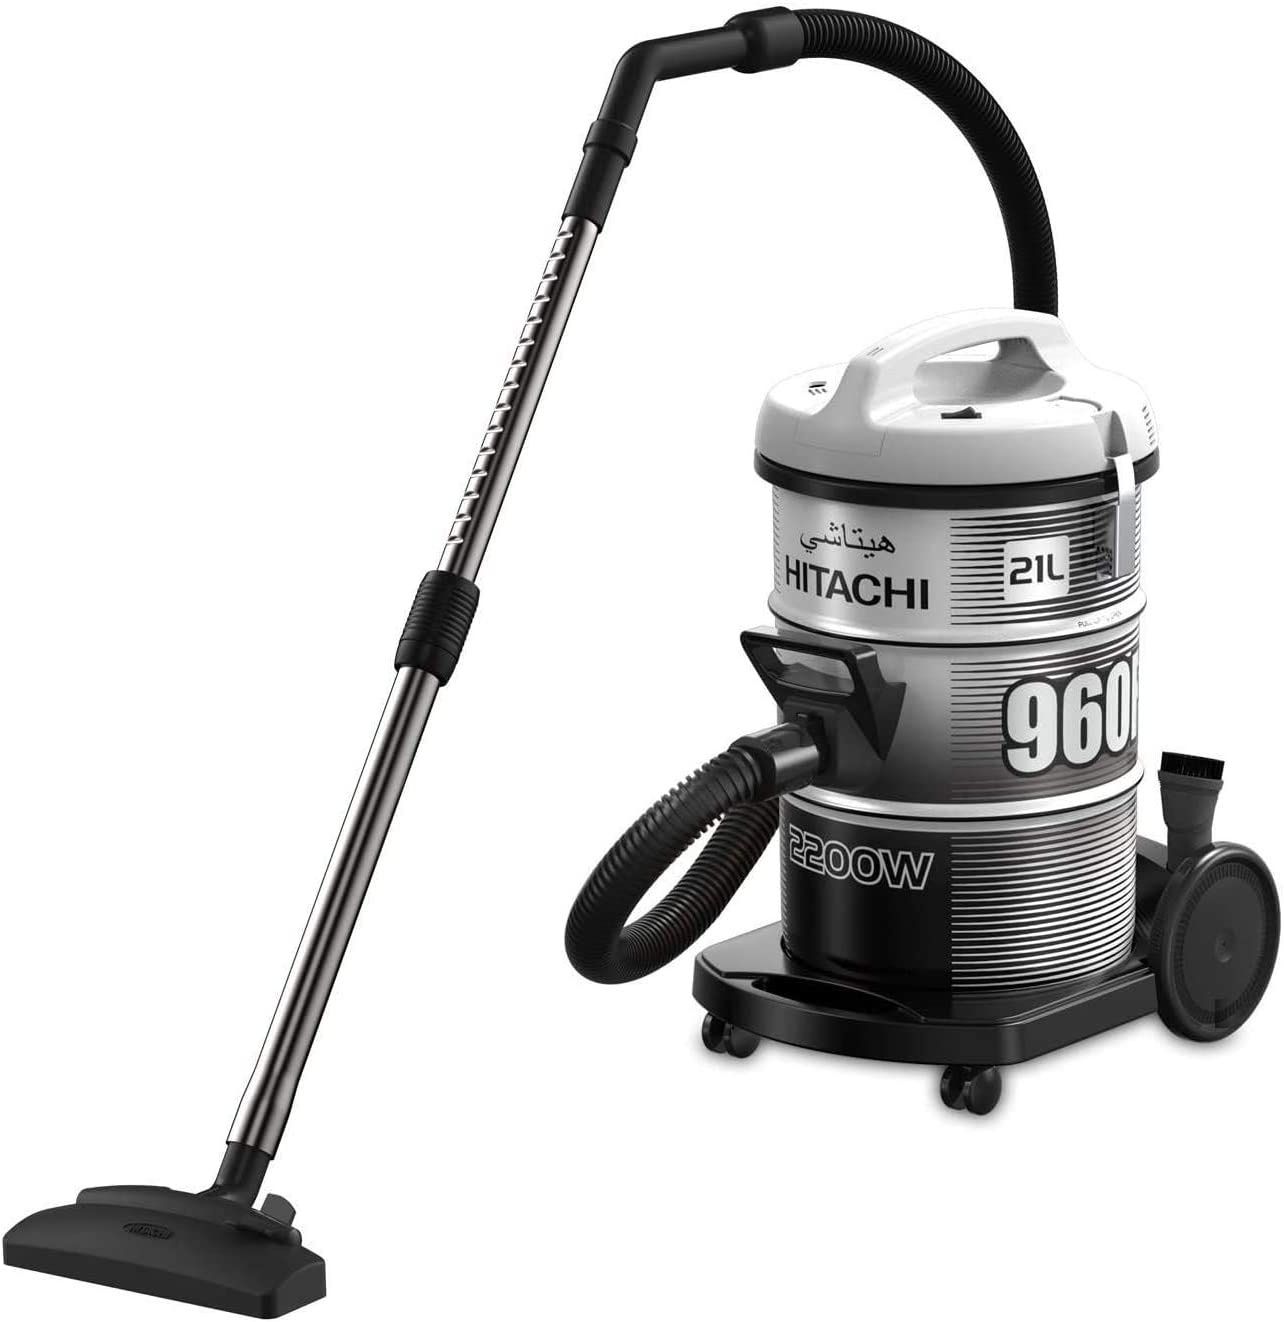 Hitachi Cv-960Y Vacuum Cleaner 2100 Watt